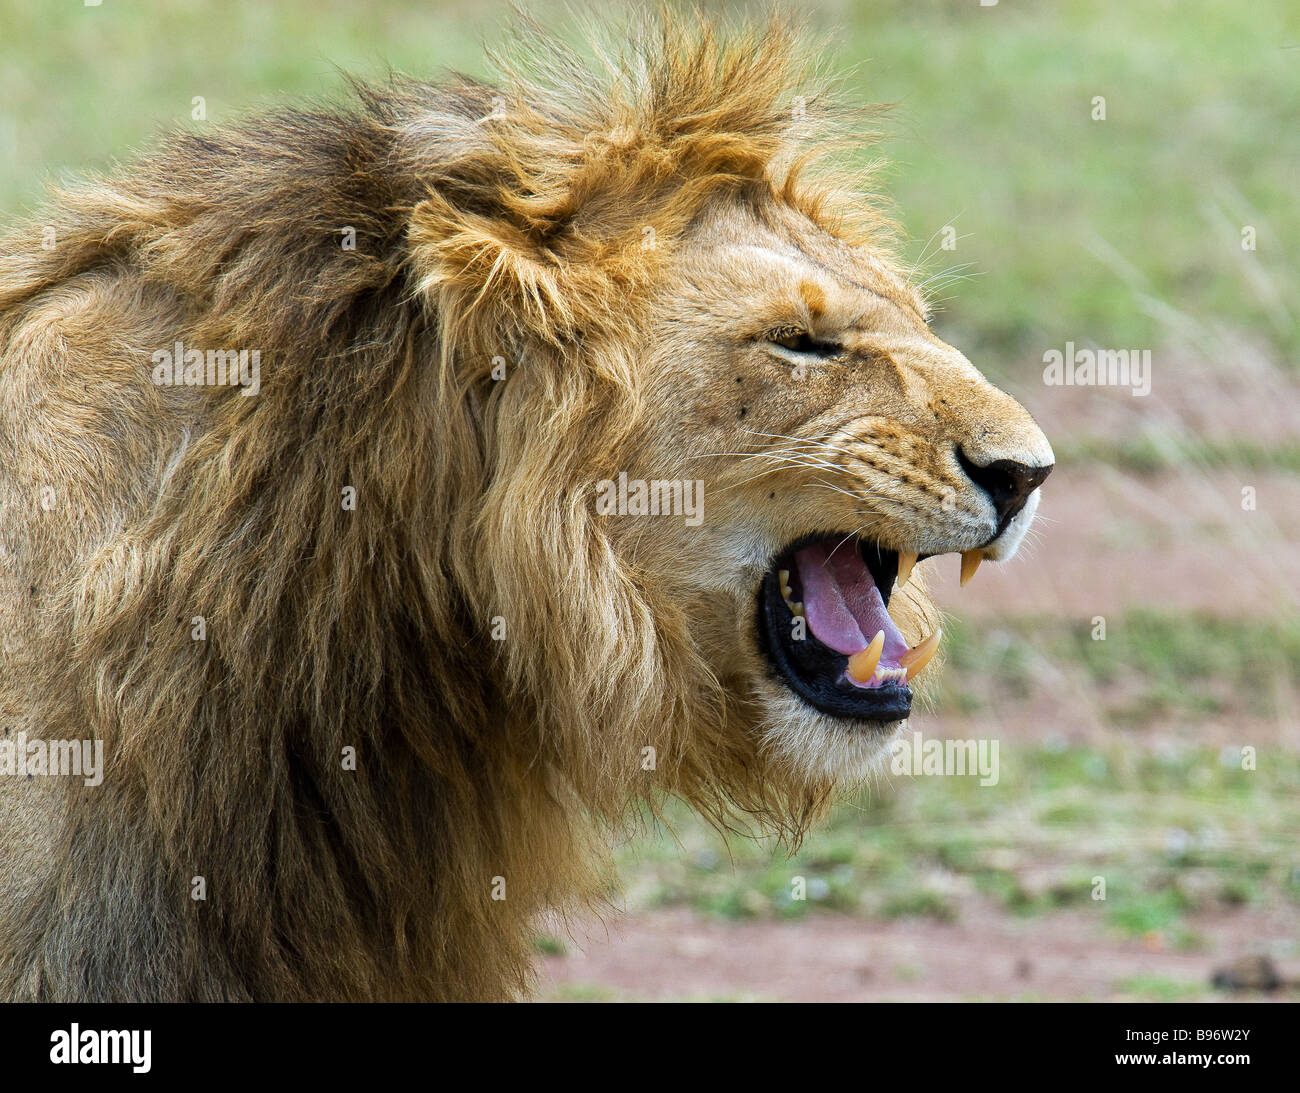 Snarling young male lion in Masai Mare, Kenya - Stock Image